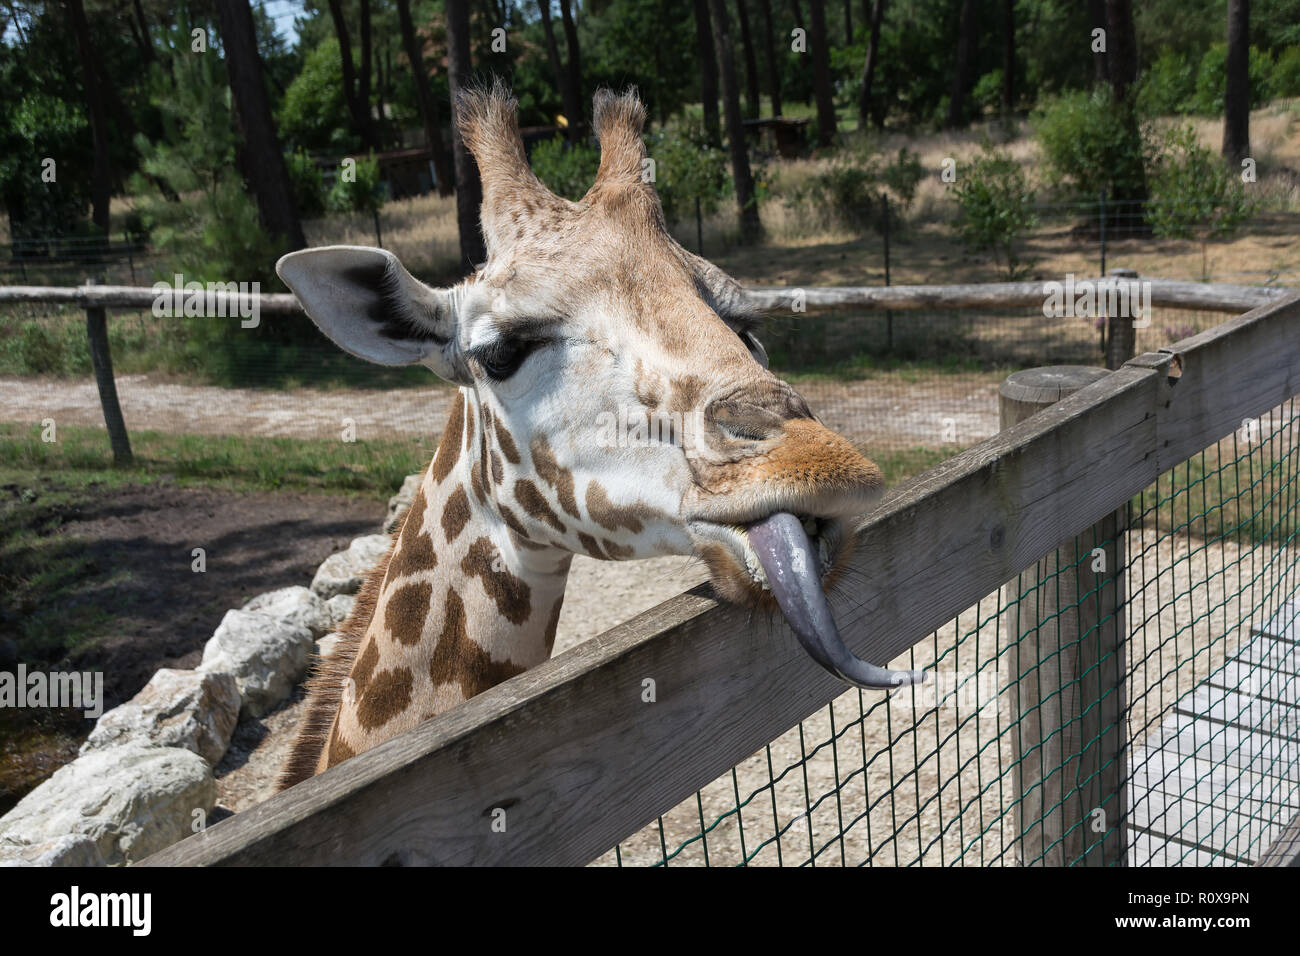 Giraffe with long tongue looks over the fence. Head close-up - Stock Image